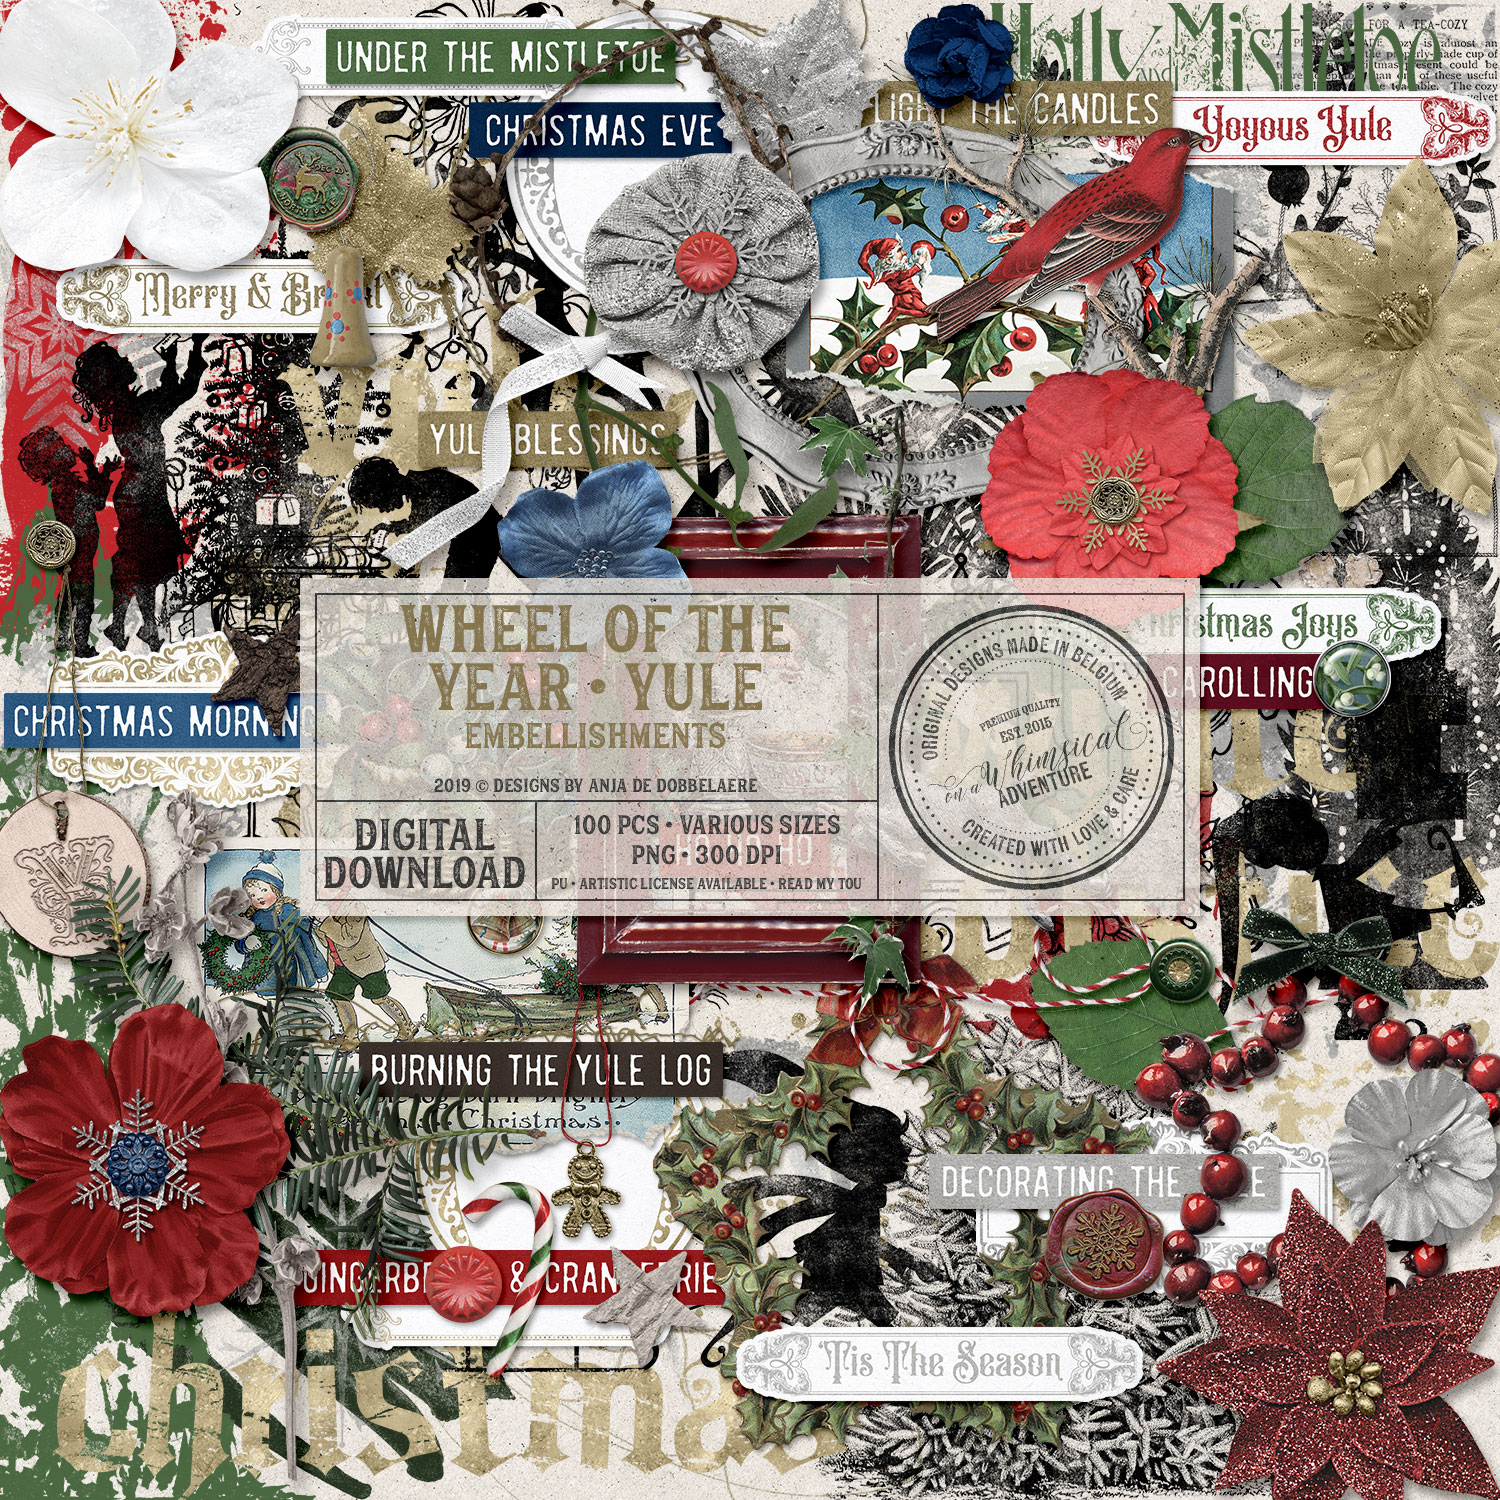 Wheel Of The Year / Yule Embellishments by On A Whimsical Adventure